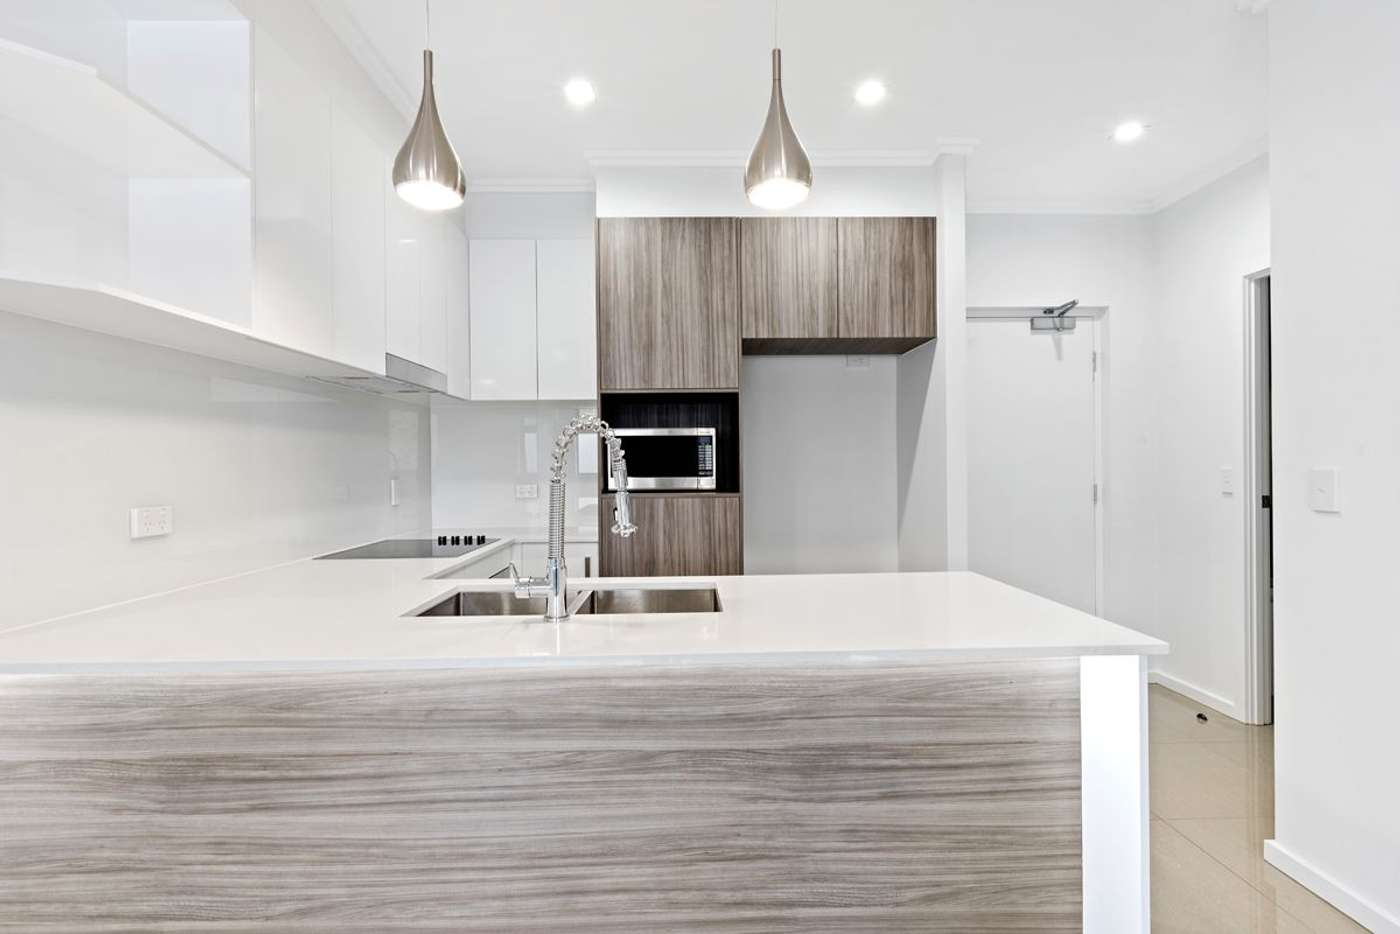 Main view of Homely apartment listing, 10/15 Durham, Coorparoo QLD 4151